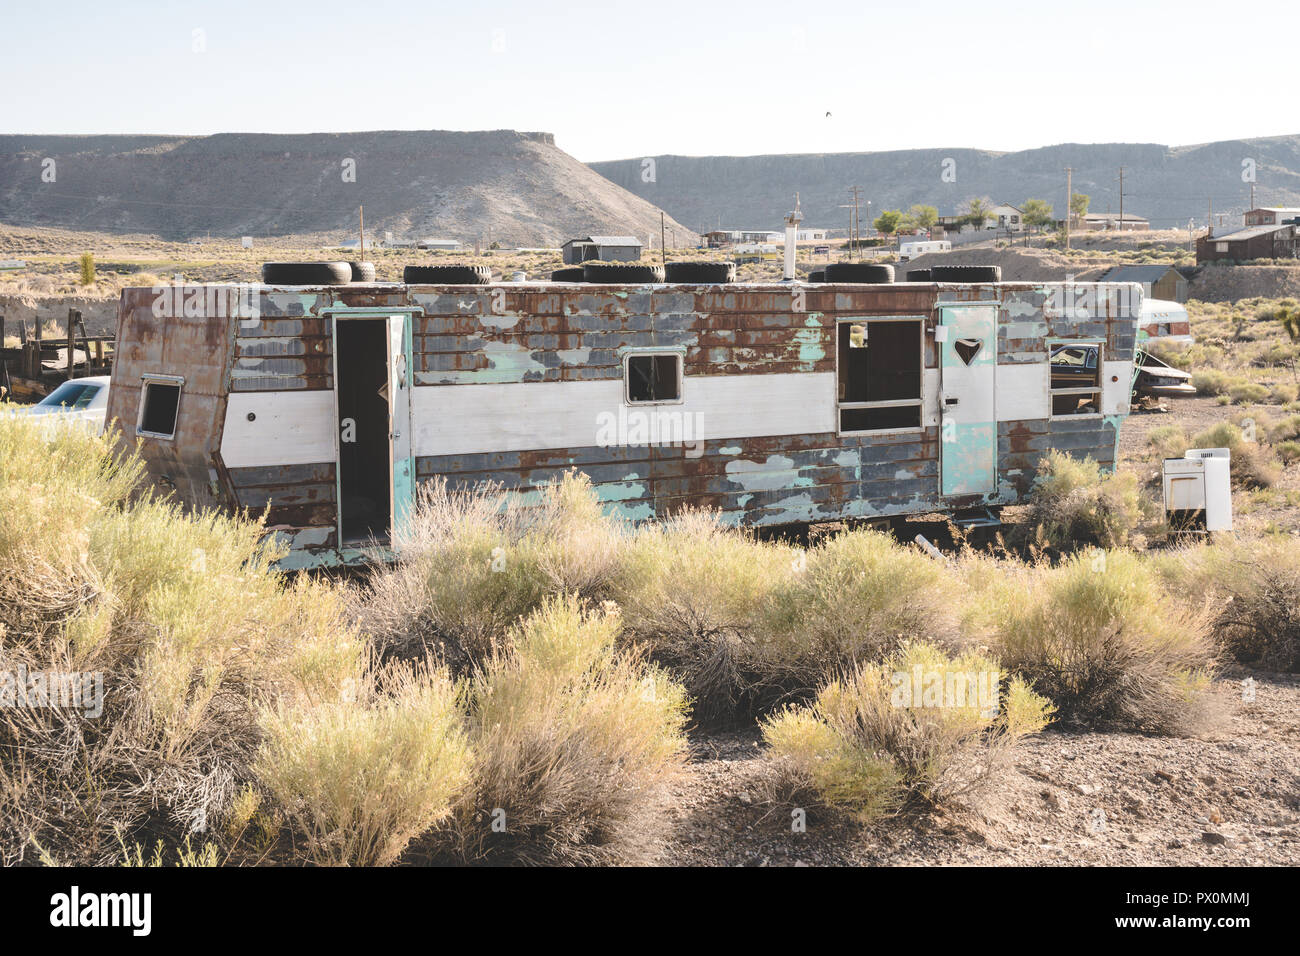 Abandoned trailers, appliances, tires and vehicles in the desert in Goldfield Nevada - Stock Image